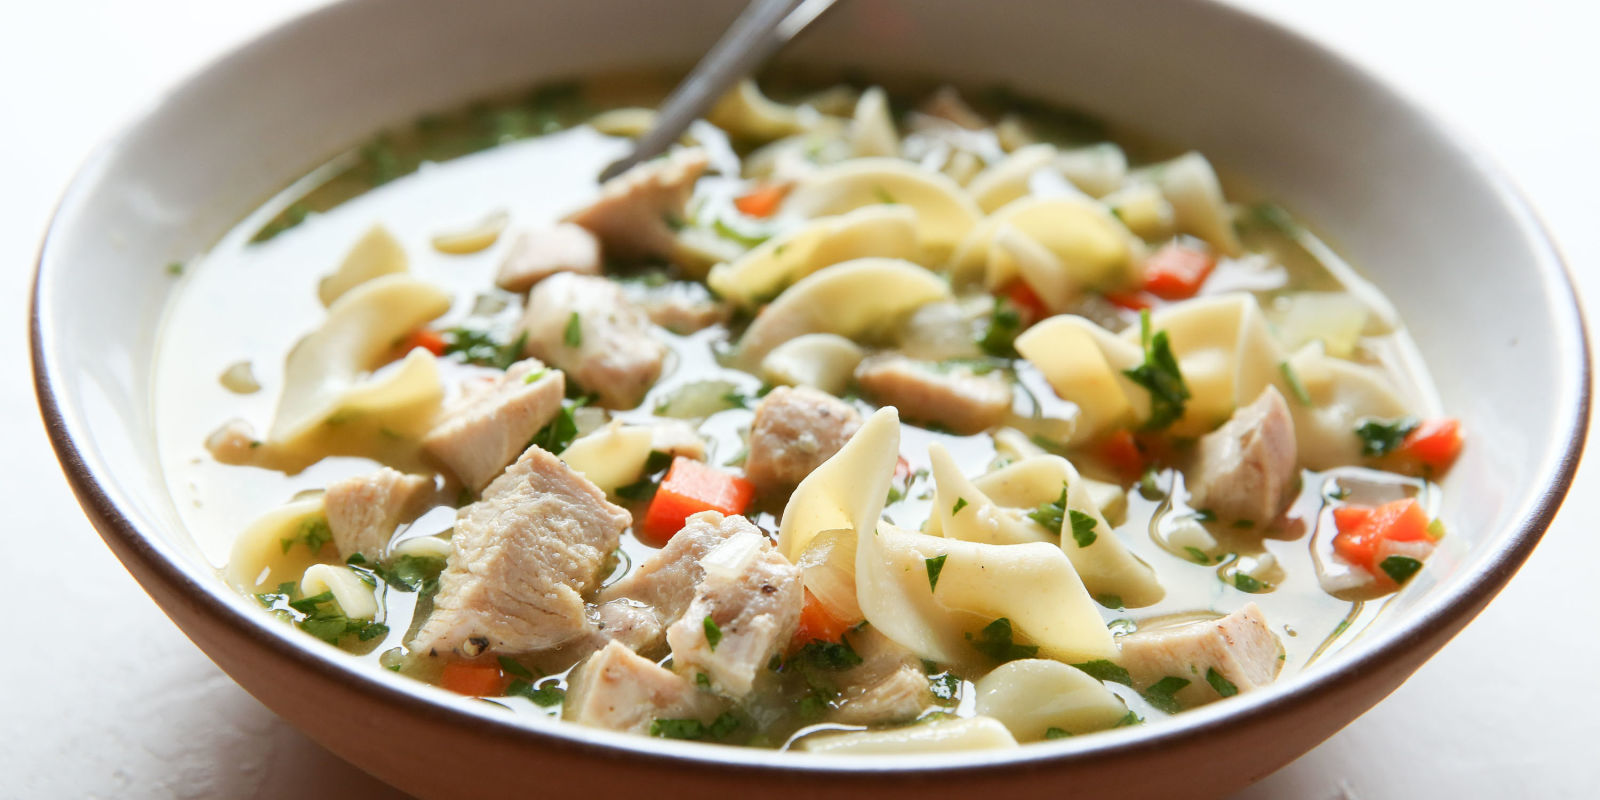 Easy homemade chicken noodle soup recipe how to make for How to make homemade chicken noodle soup